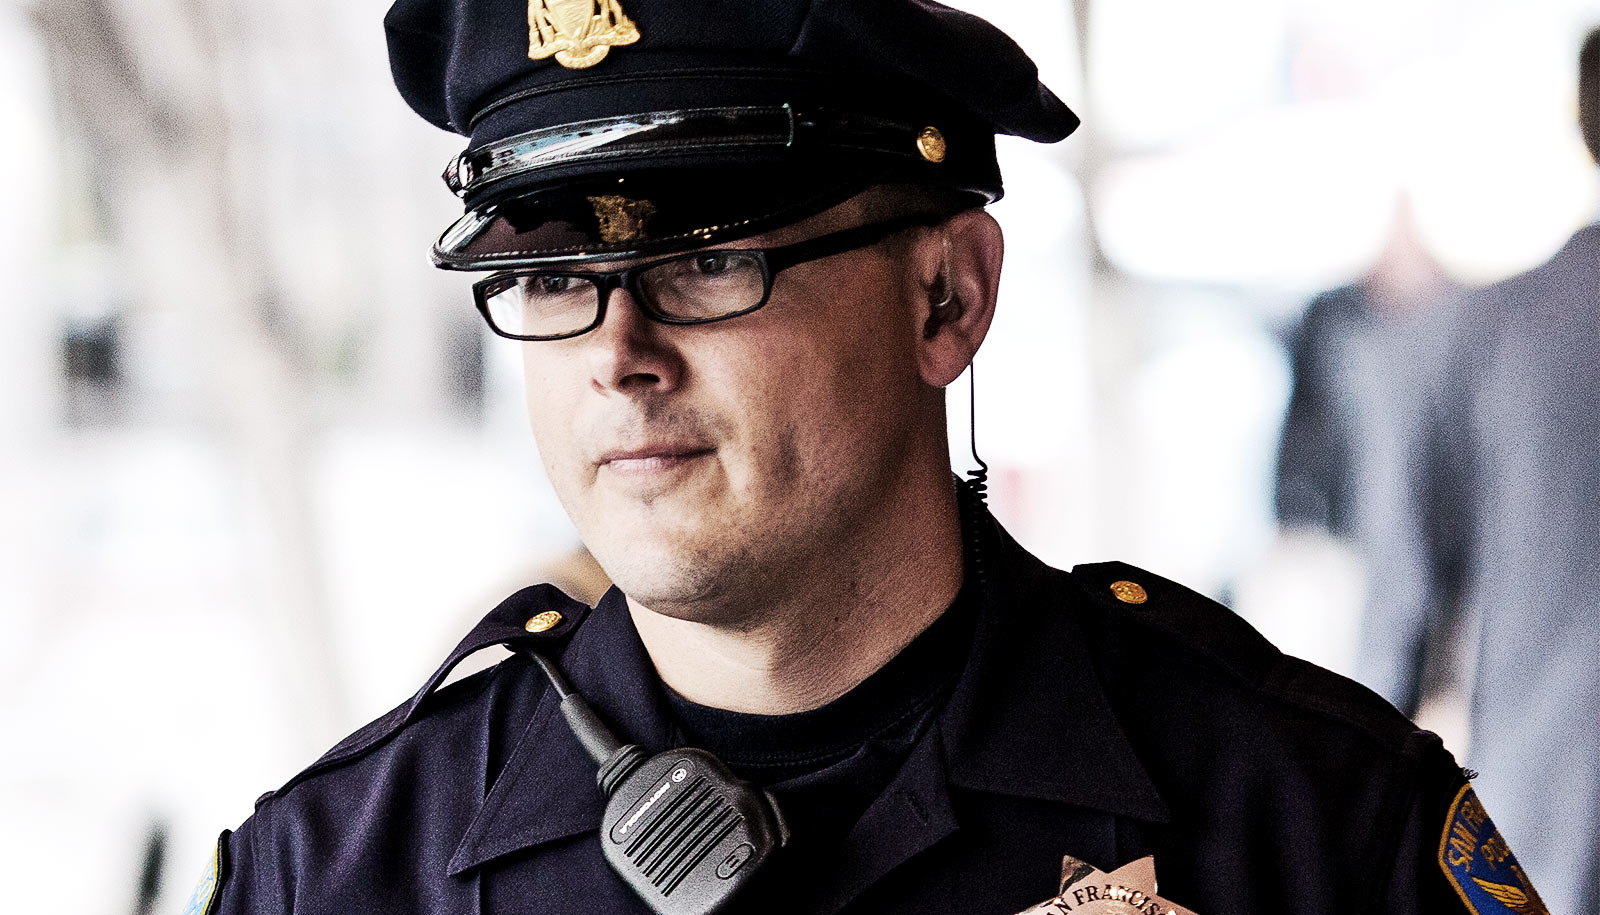 Police officers get less proactive when they feel scrutiny